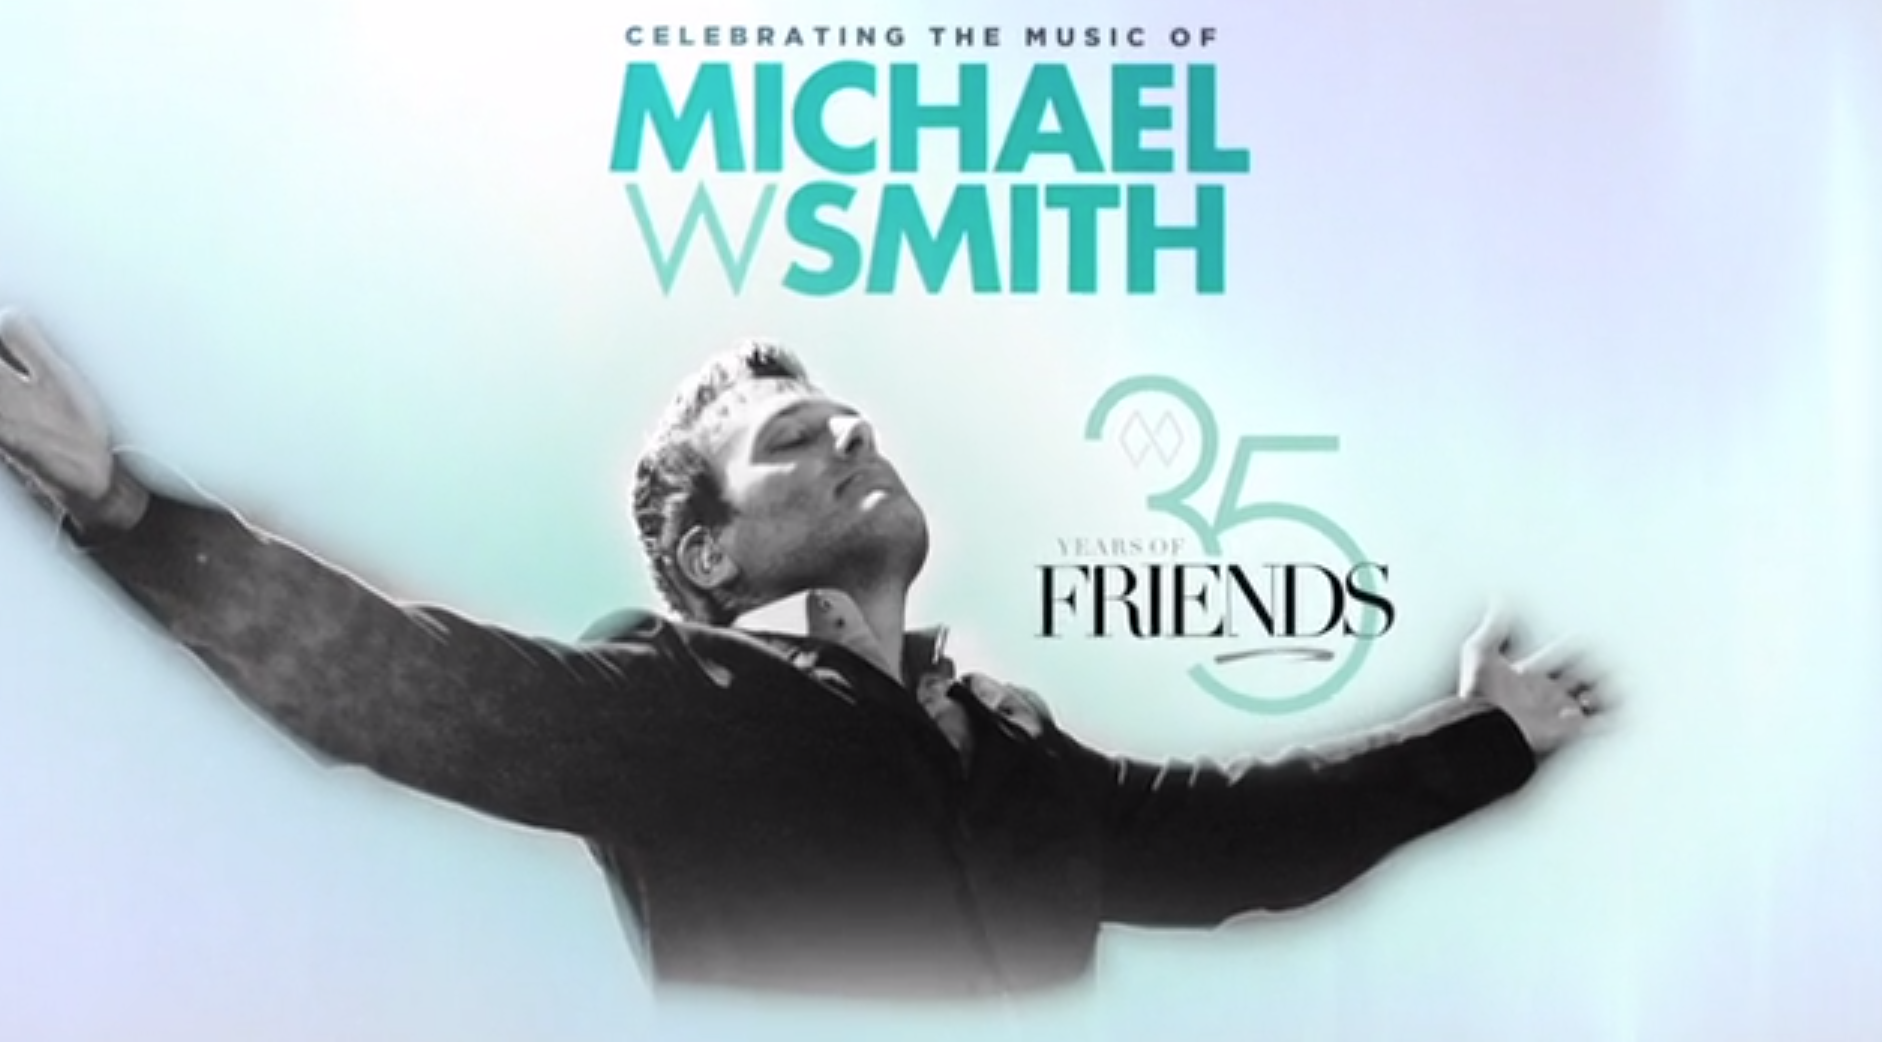 35 Years of Friends with Michael W. Smith Part 1